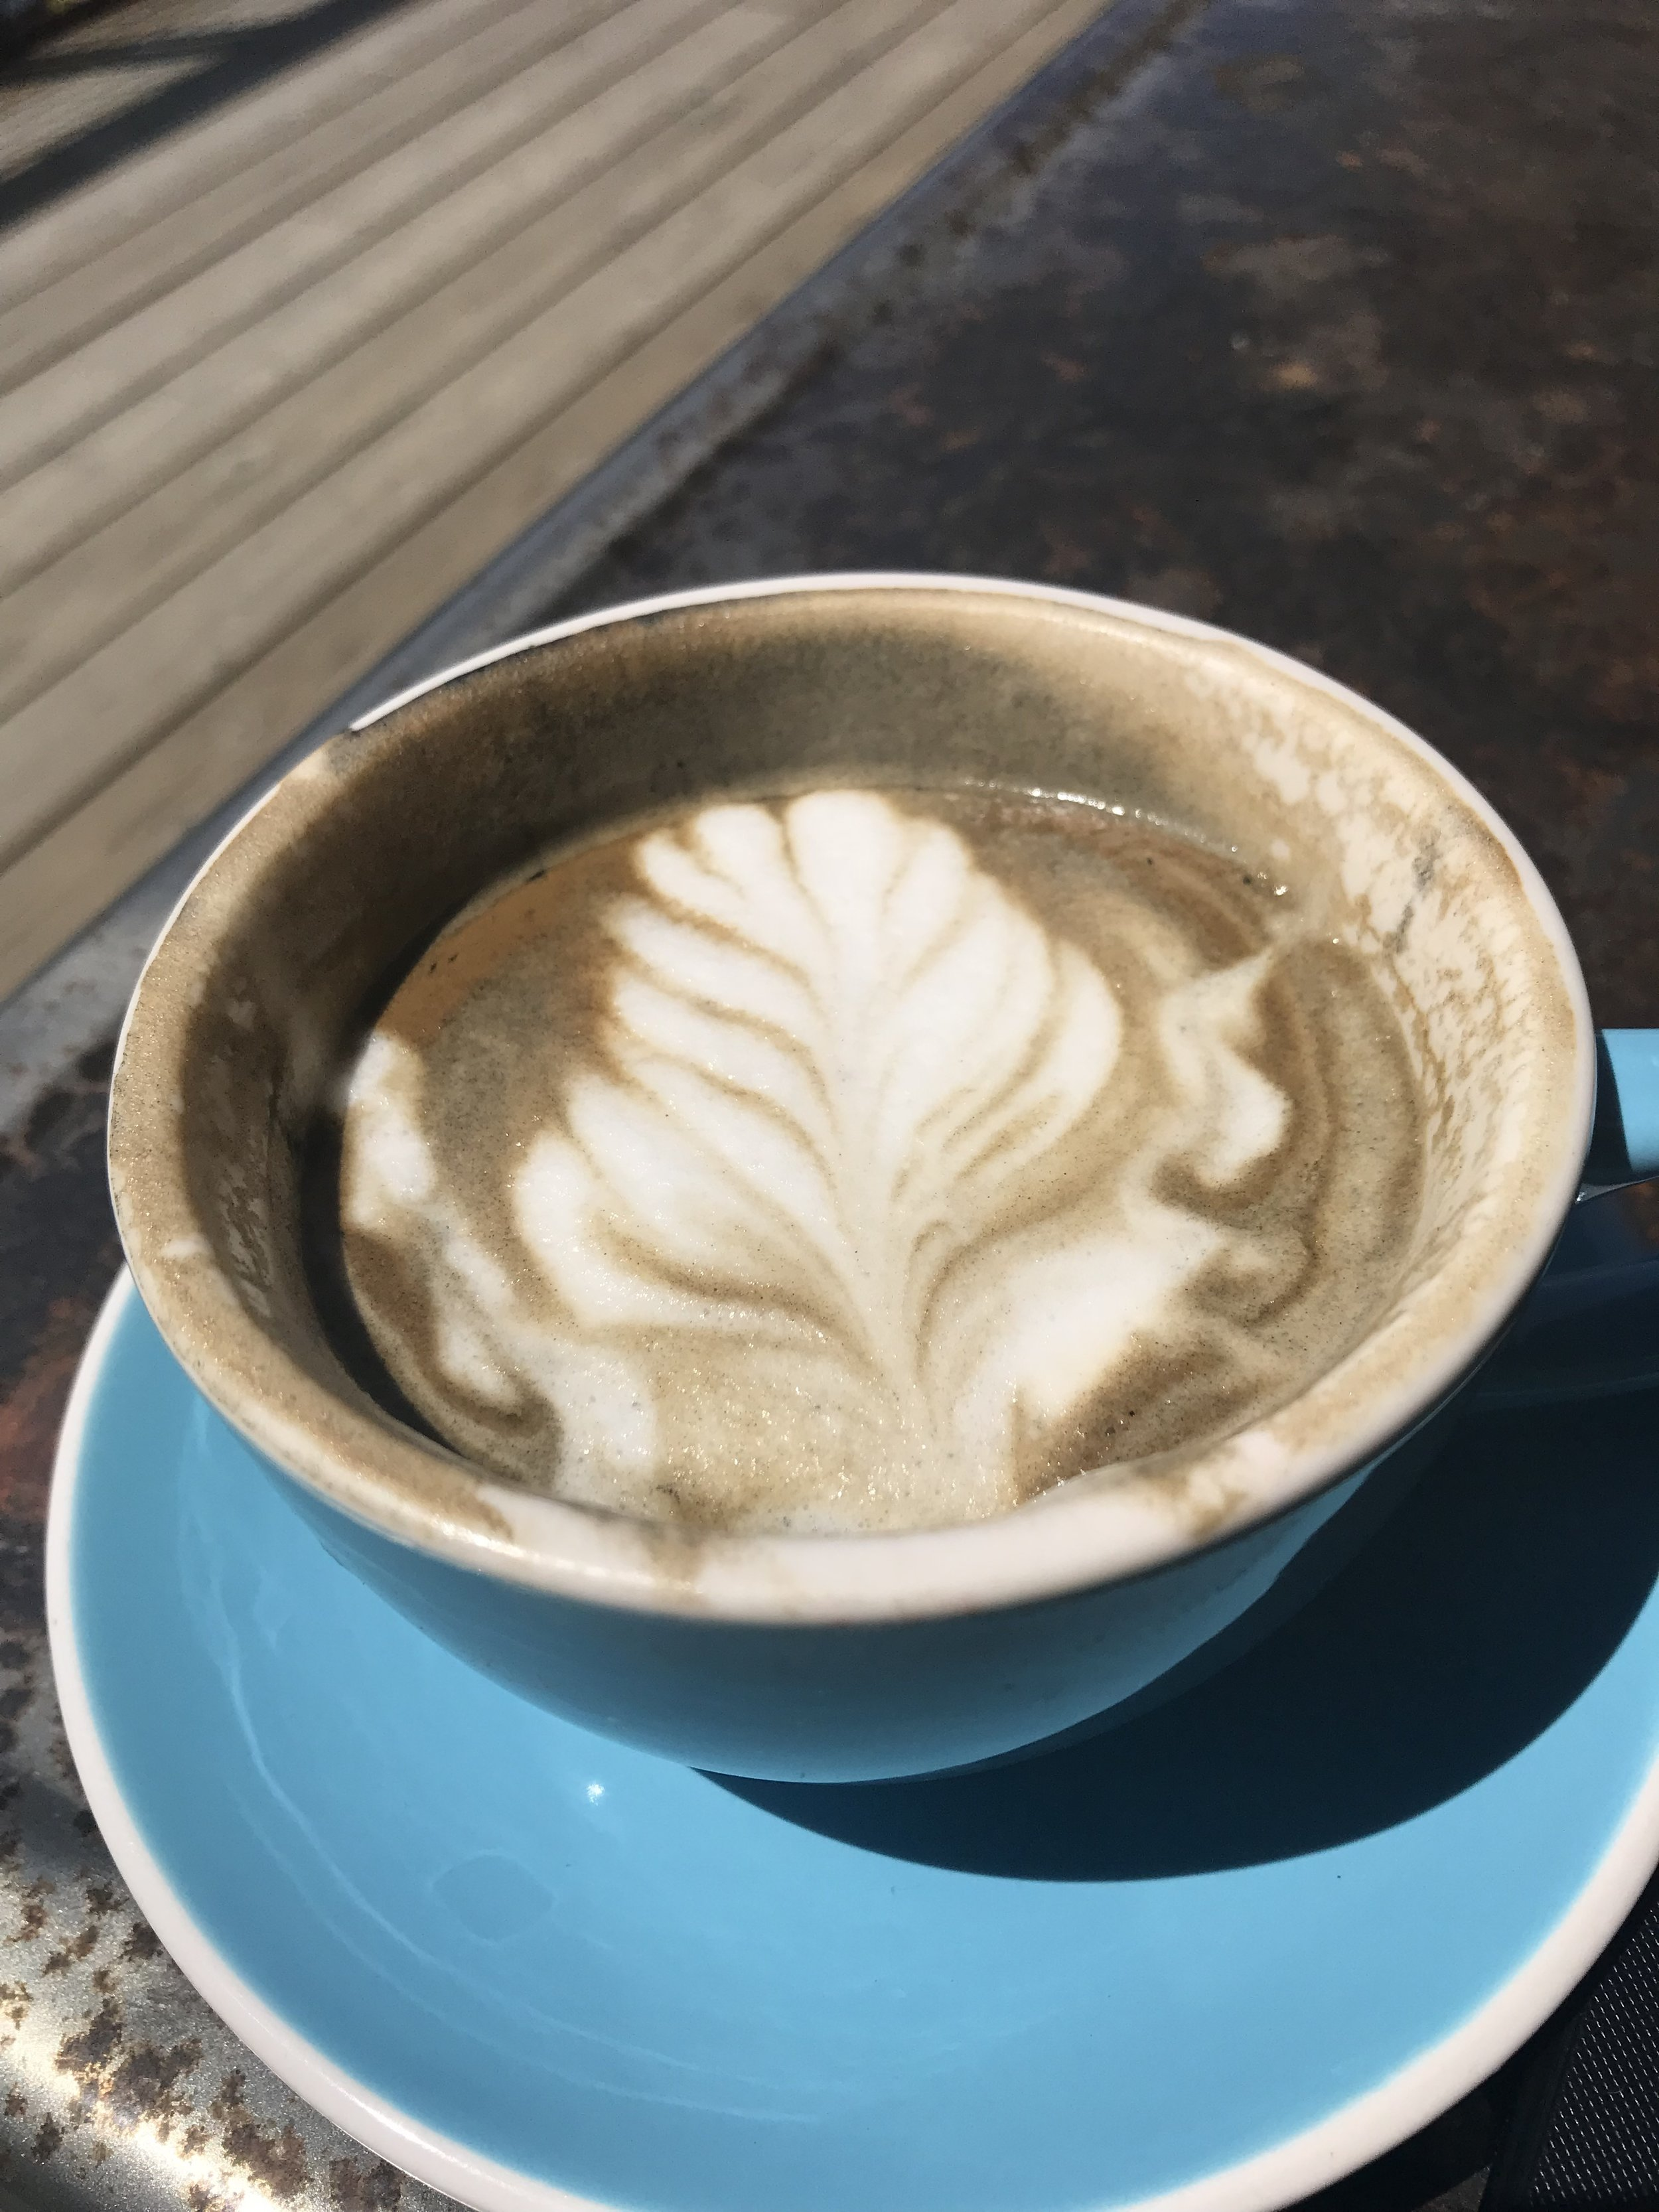 Charcoal Latte with Almond Milk. One of my favorite things. Activated charcoal is amazing for detoxifying the body. Activate charcoal is porous so it adsorbs the toxins in your body. -